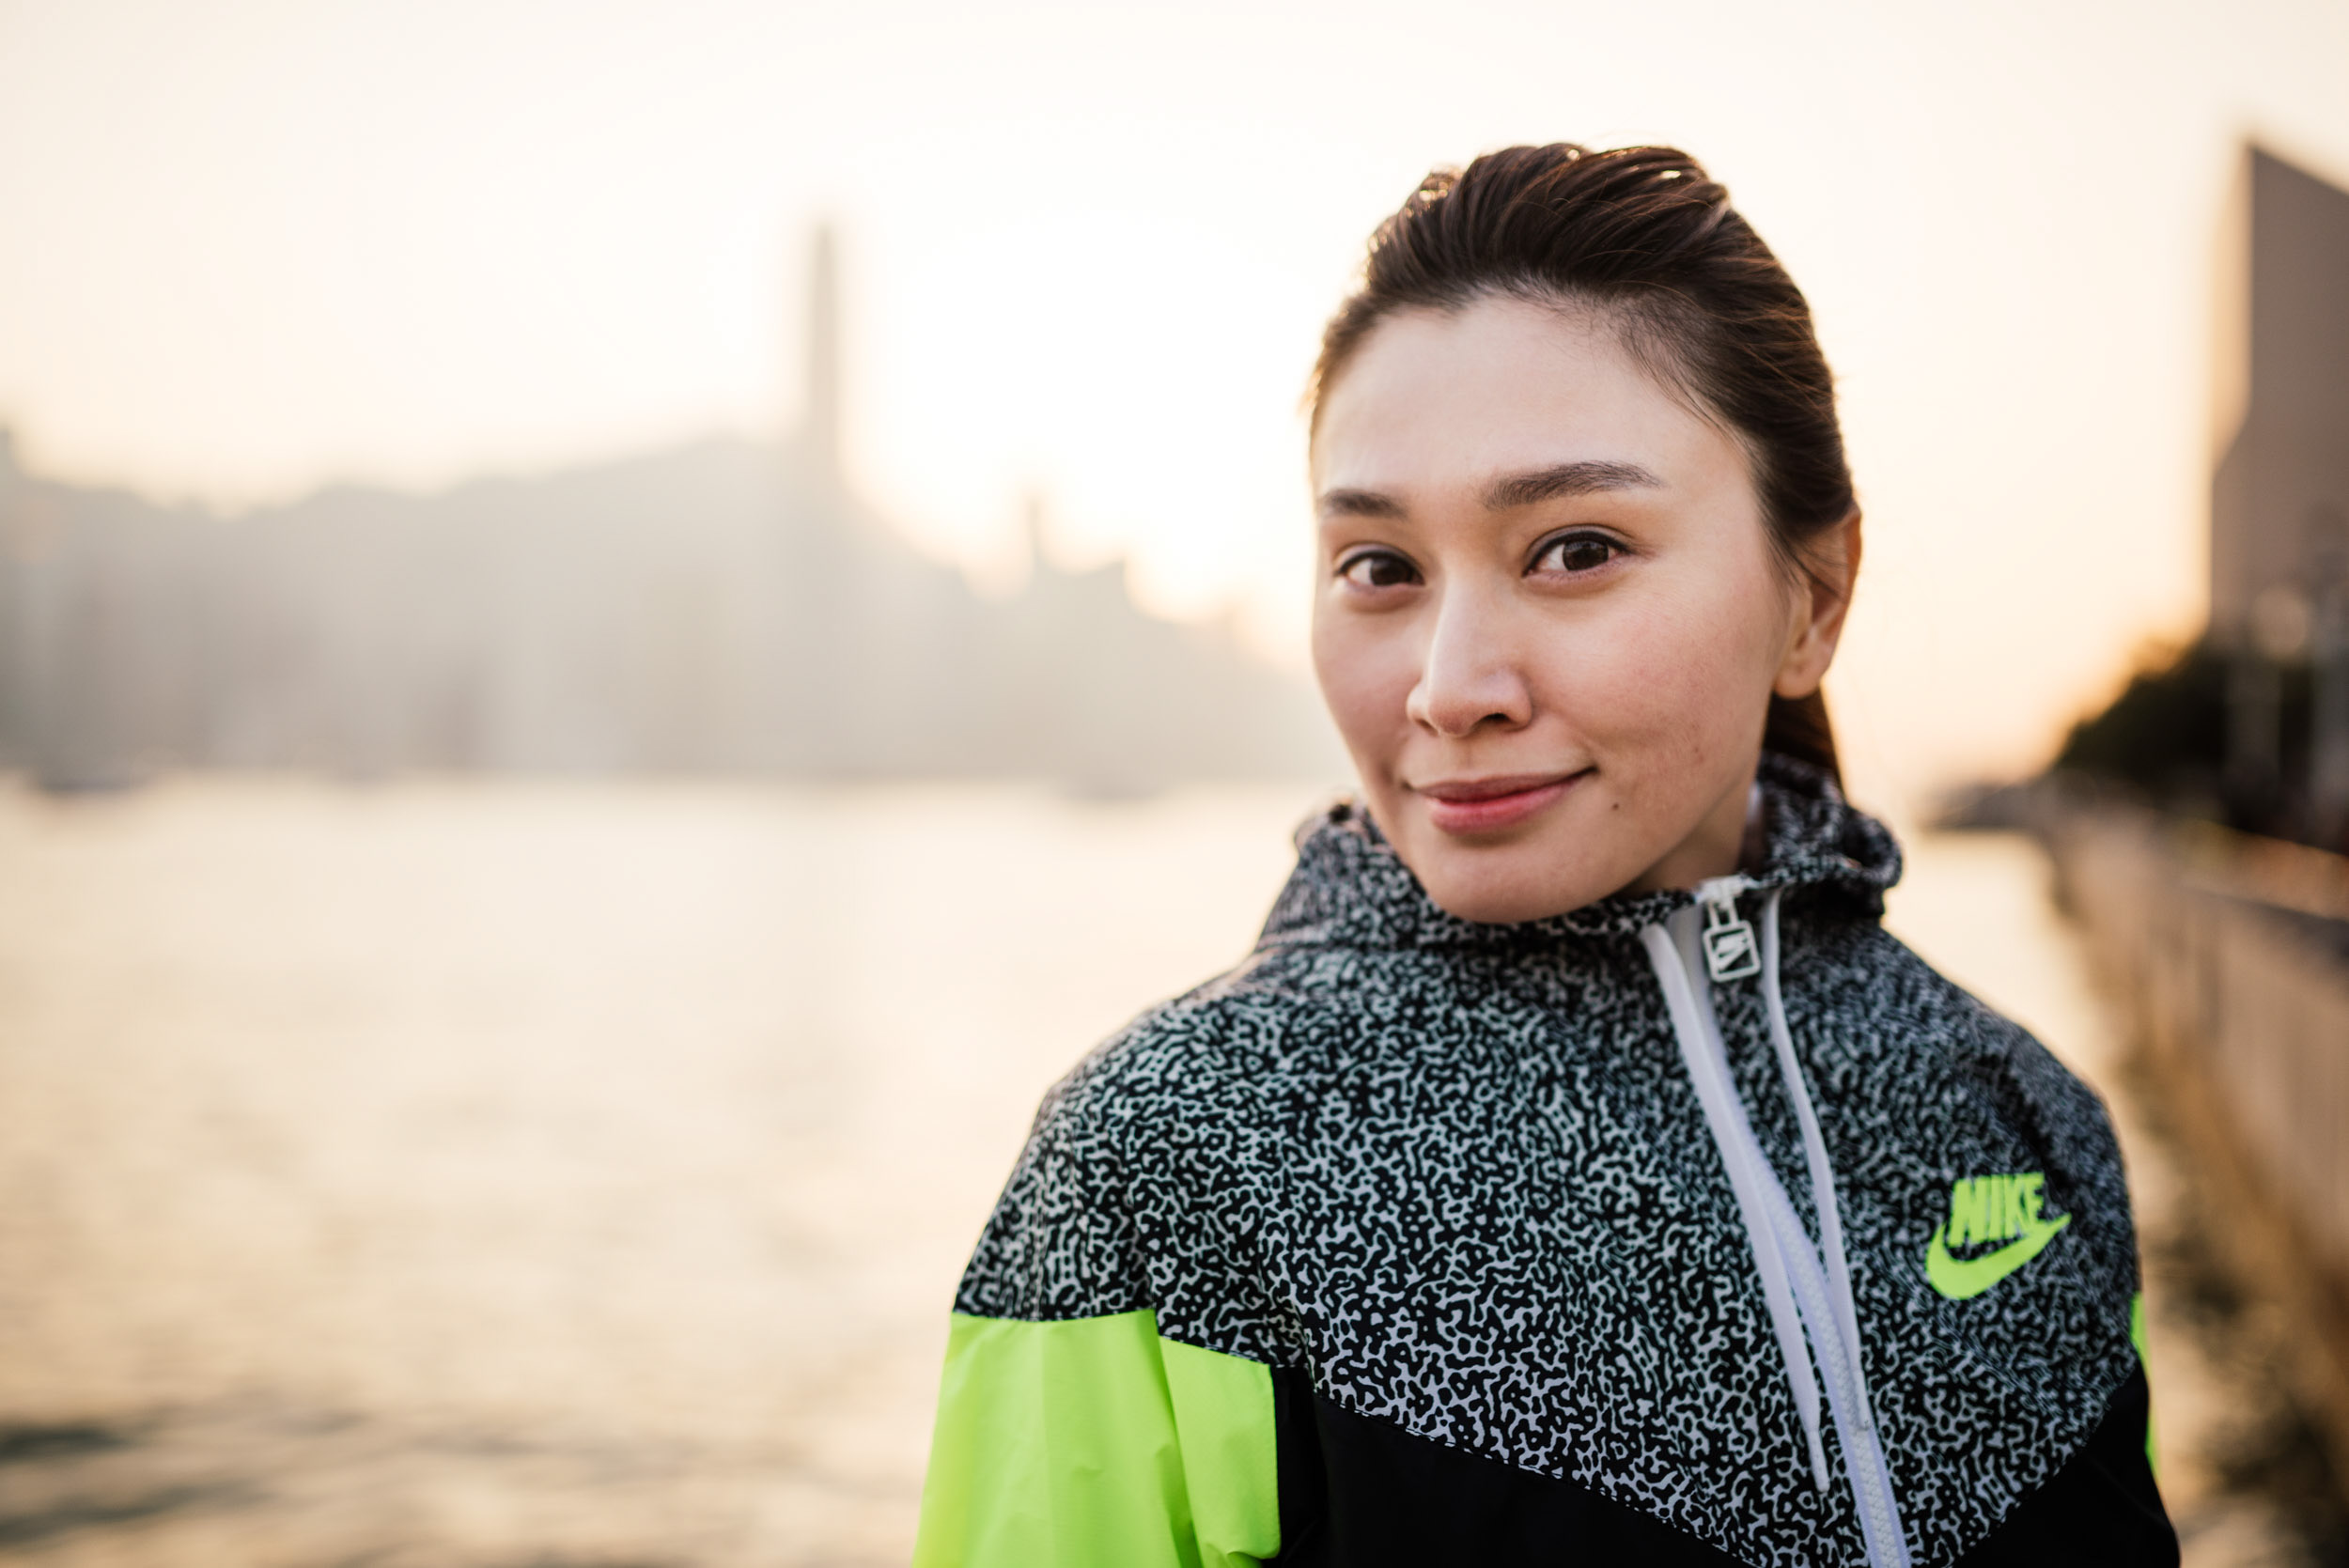 portrait-woman-tsim-sha-tsui-kowloon-nike-hong-kong-china